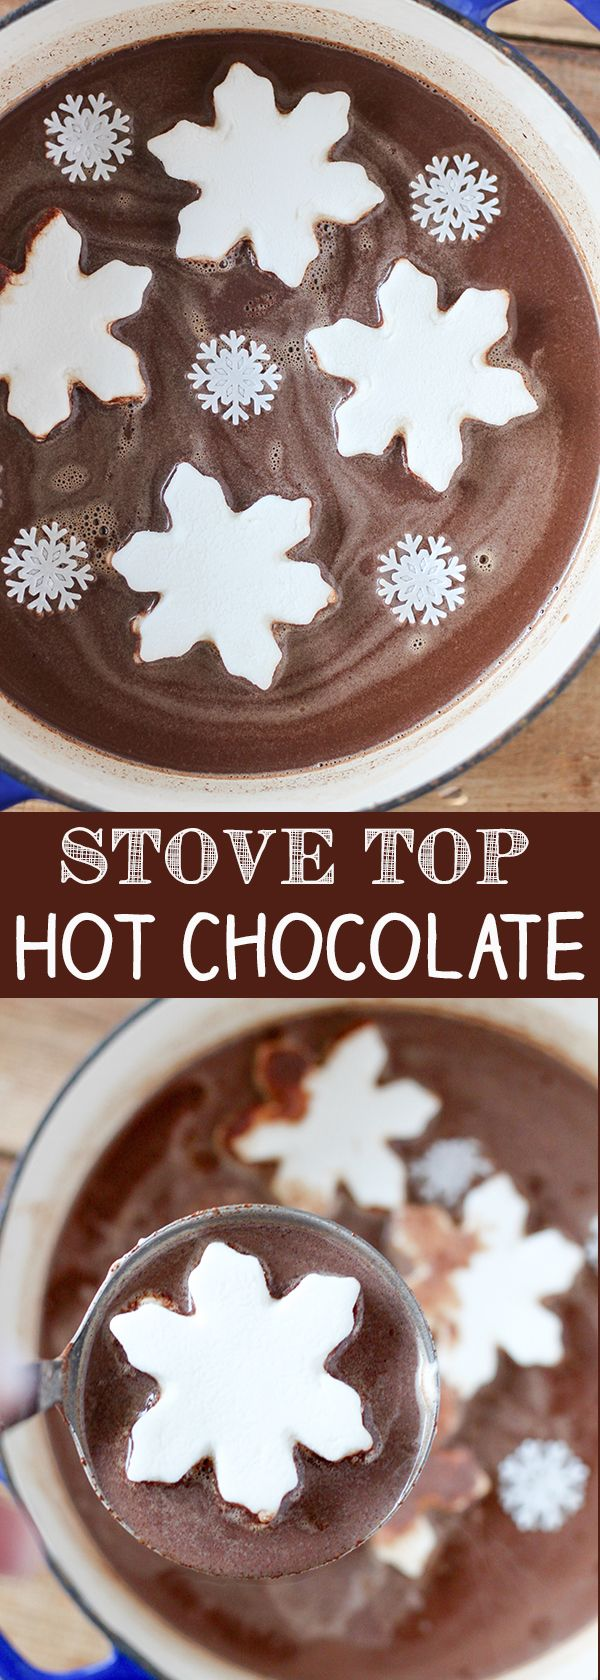 Stove Top Hot Chocolate - easy homemade, real hot chocolate.